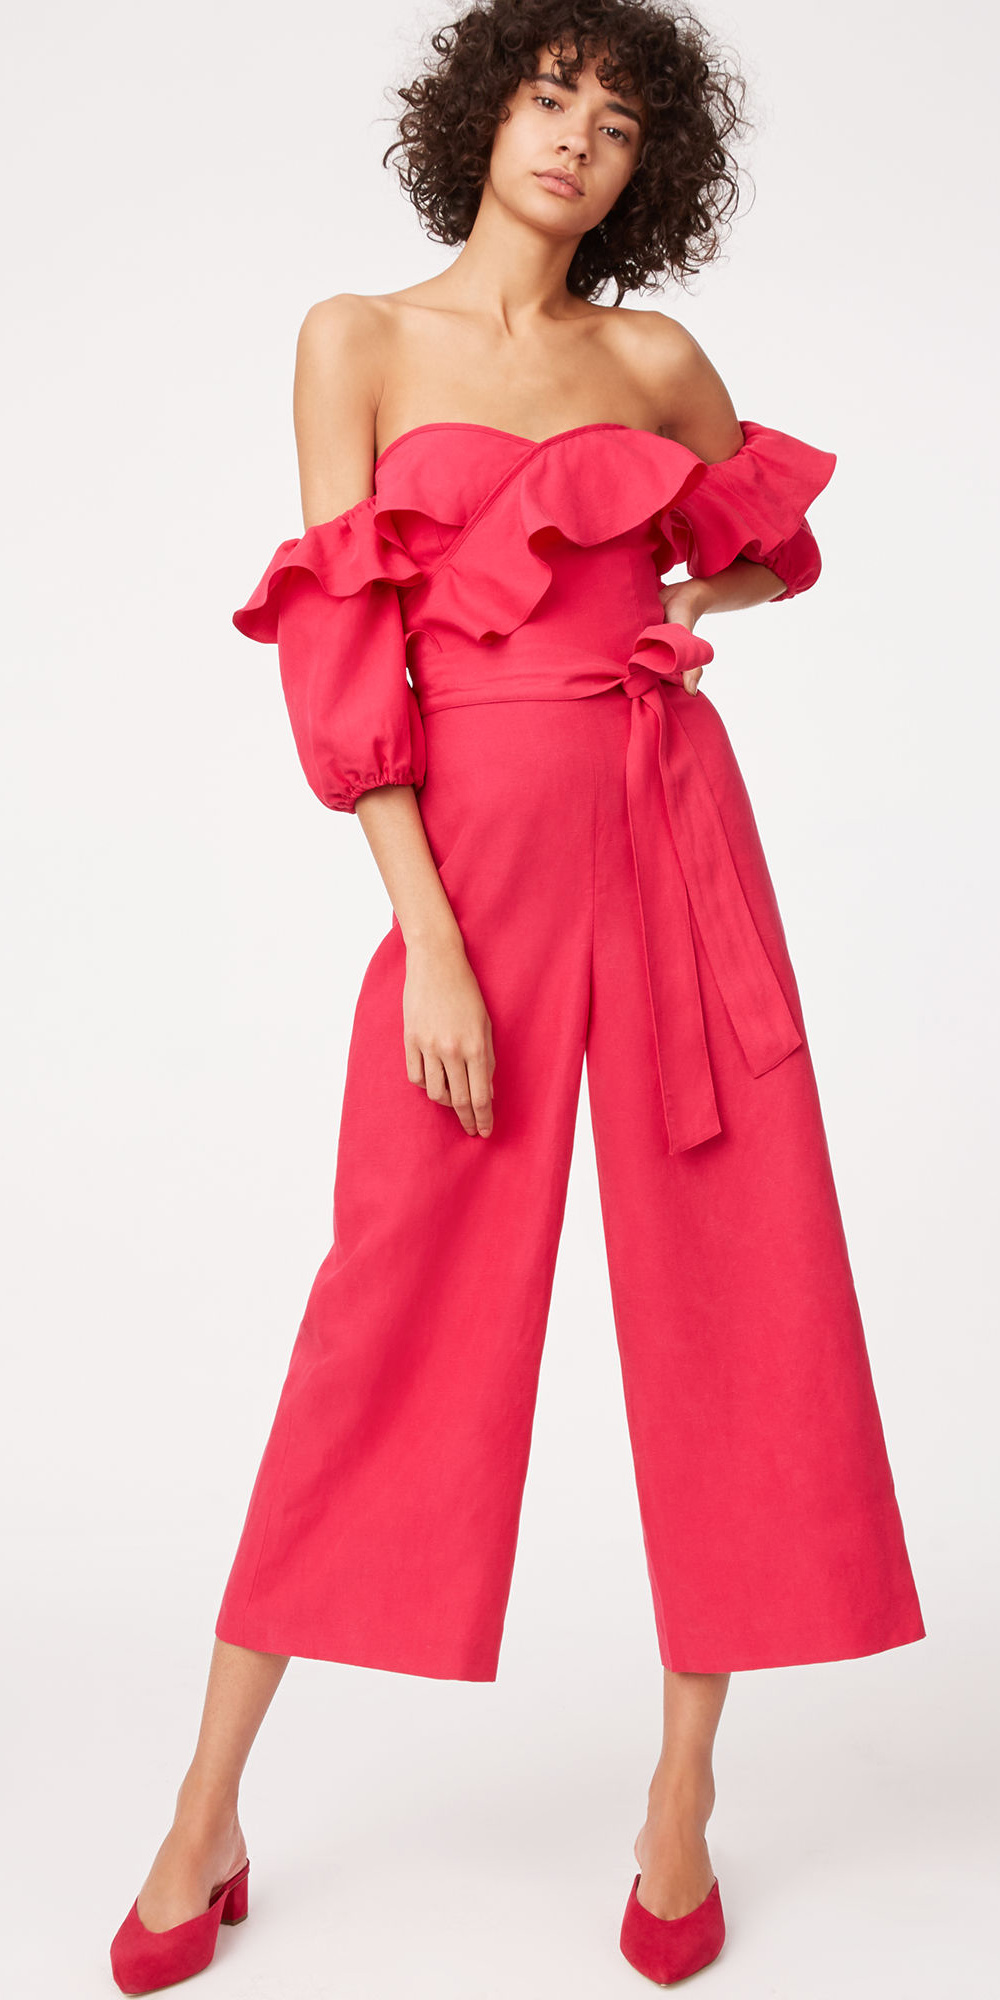 what-to-wear-for-a-spring-wedding-guest-outfit-pink-magenta-jumpsuit-offshoulder-pink-shoe-pumps-dinner.jpg